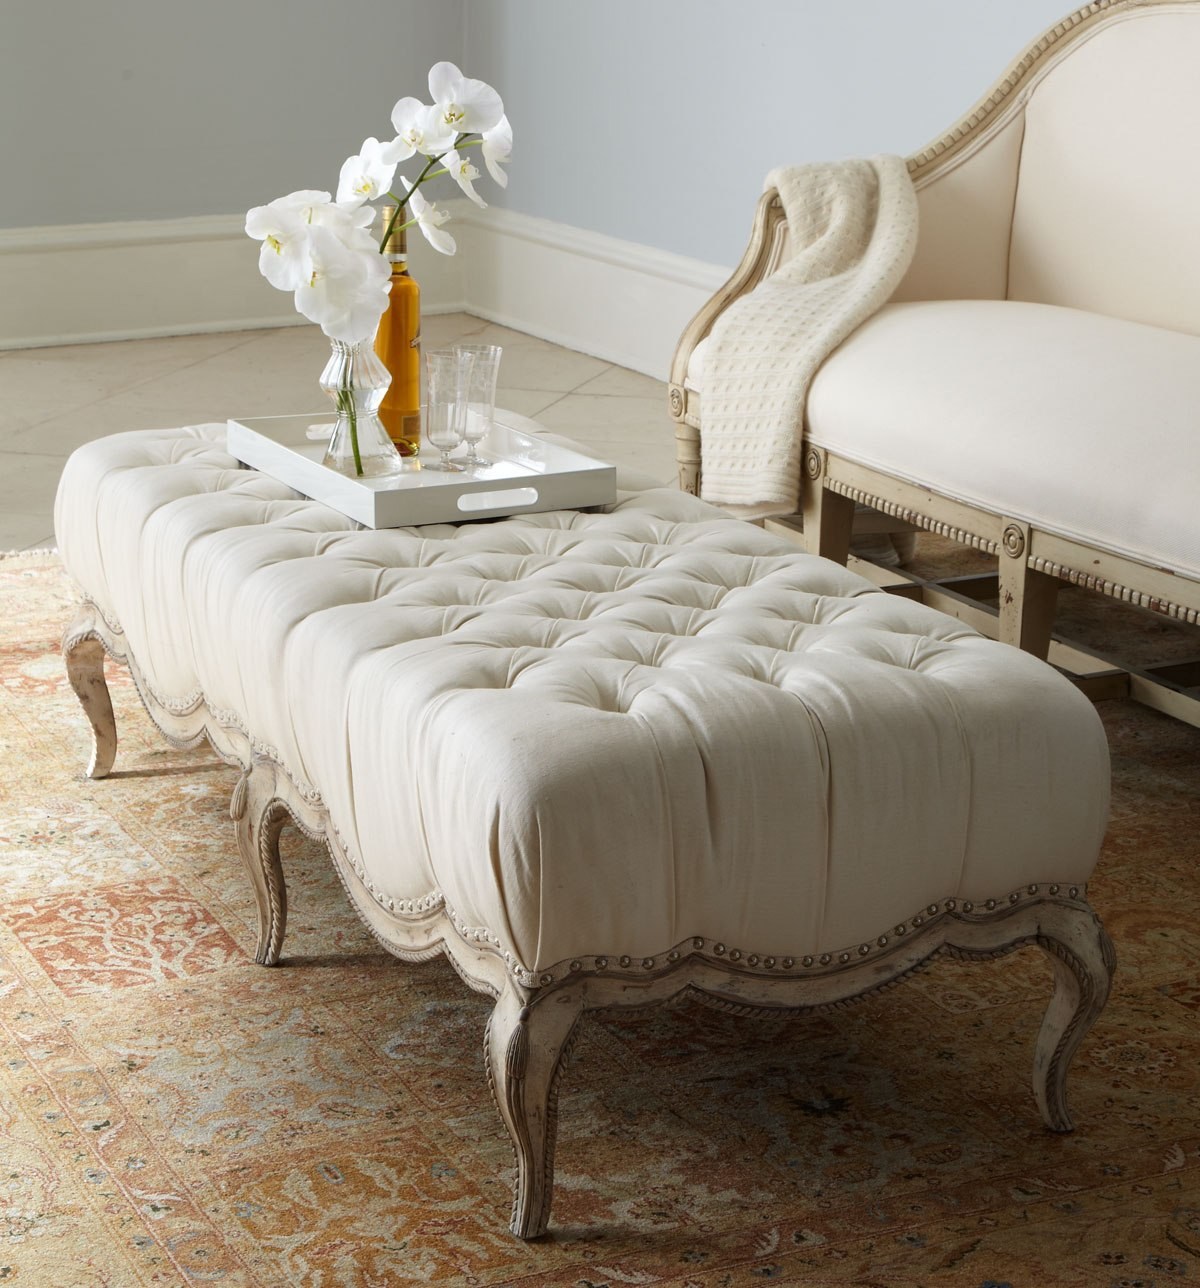 plush tufted ottomans to add comfort and functionality to your